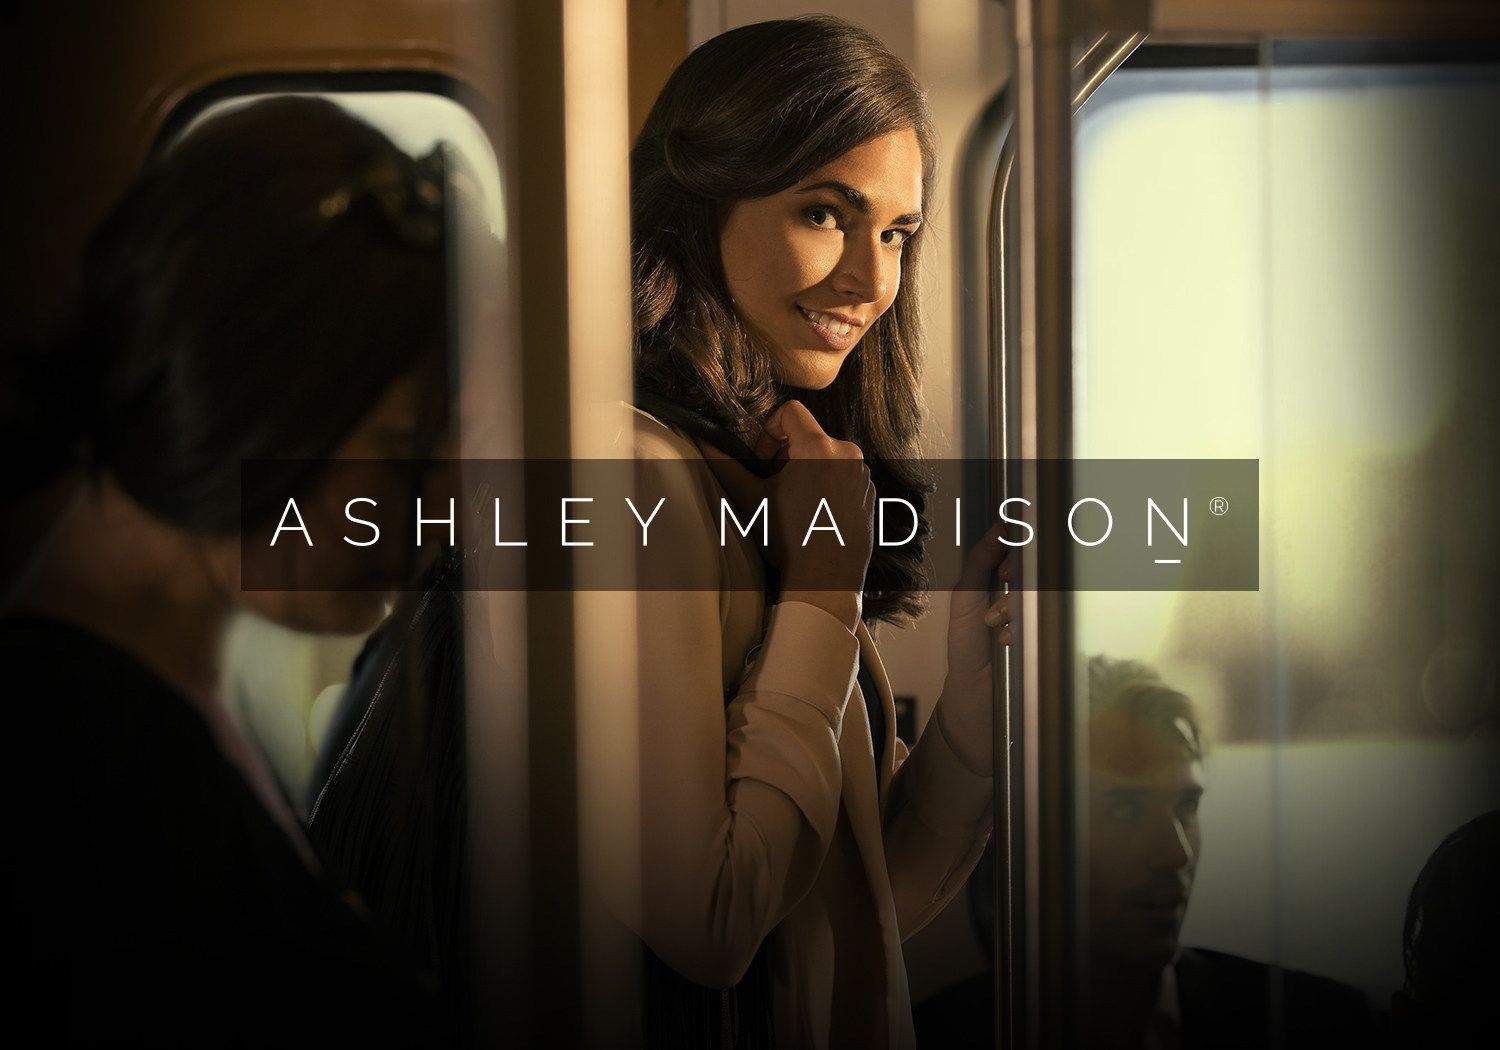 Ashley Madison gives infidelity a new look Online dating